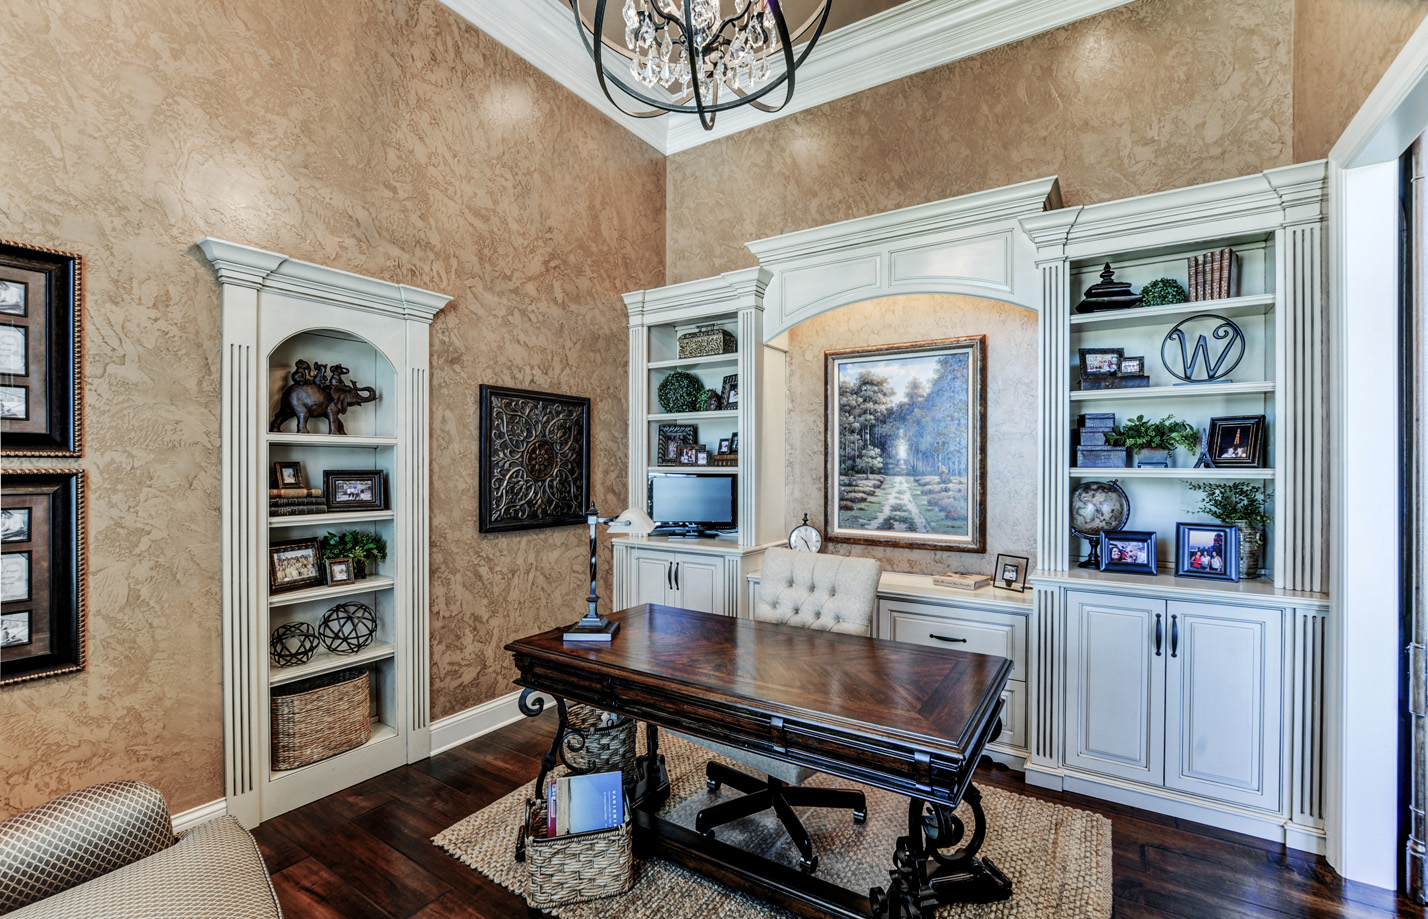 built-by-brett-custom-home-springfield-mo-13735-lawrence-2100-032.jpg